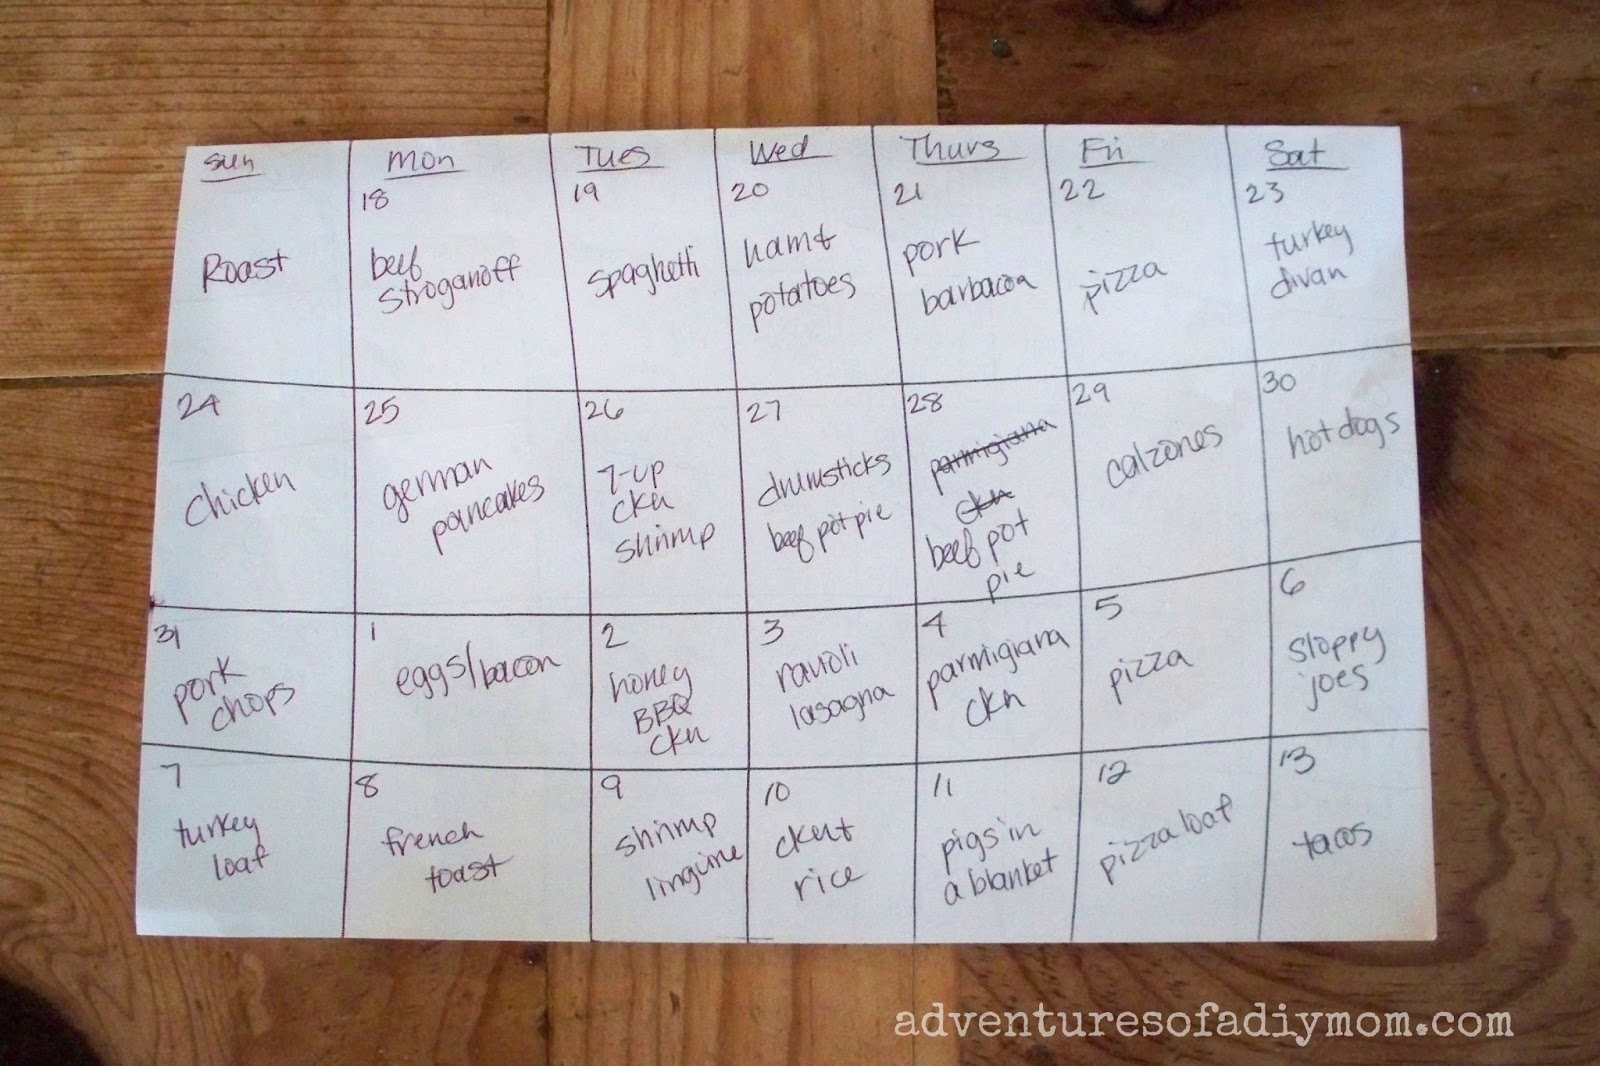 Tips on Running a Household: Menu Planning